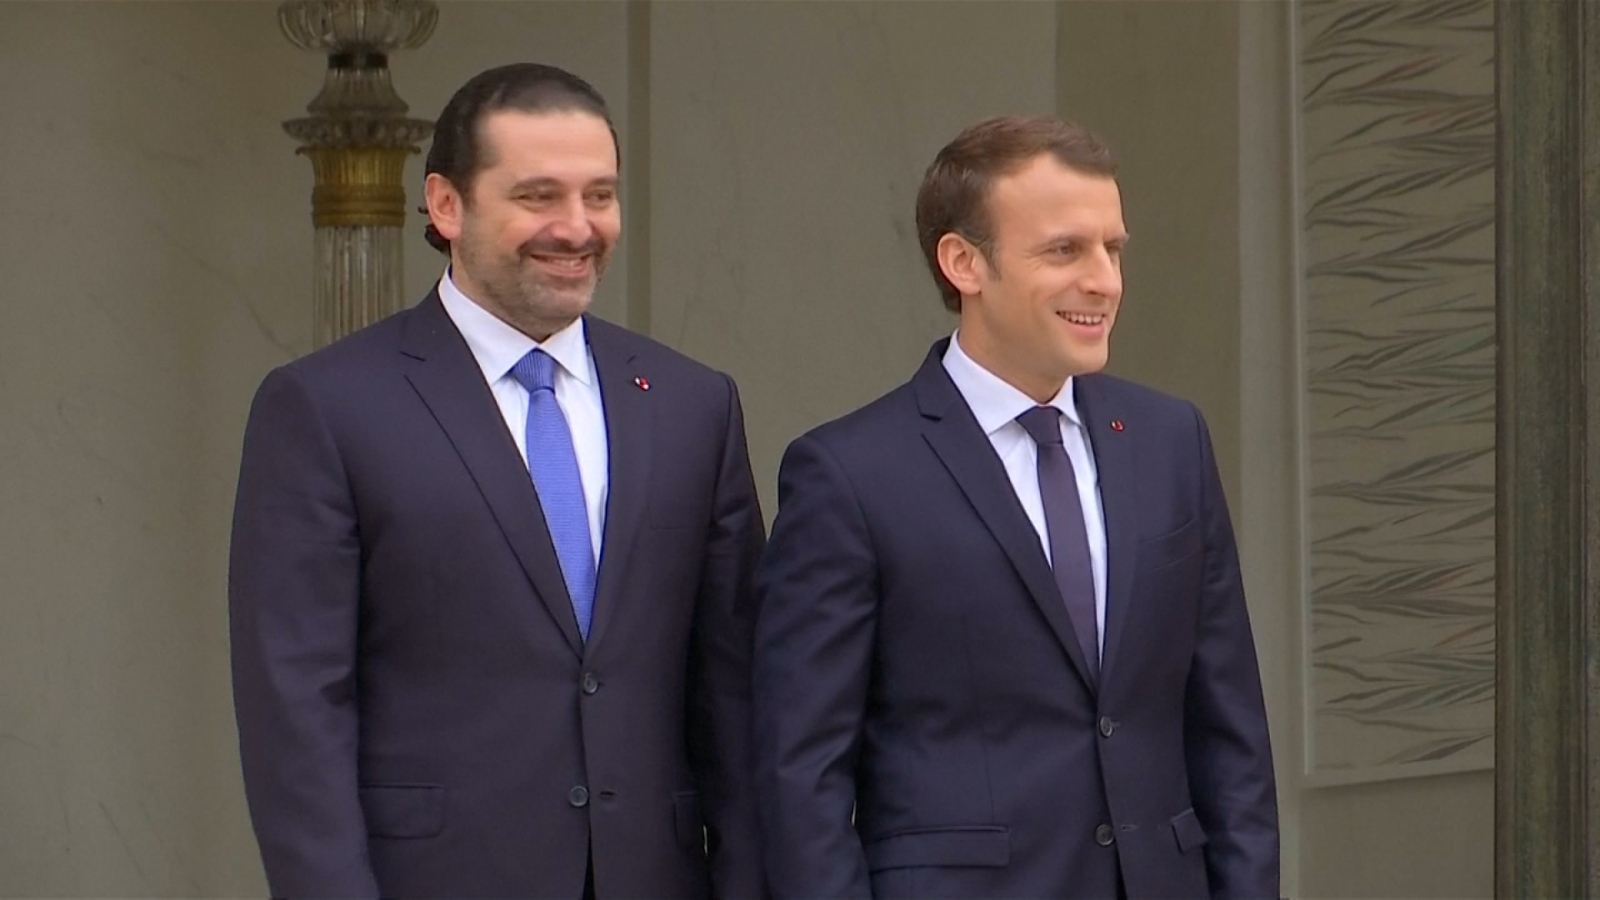 former-lebanon-prime-minister-meets-with-president-macron-in-france-following-hostage-rumours